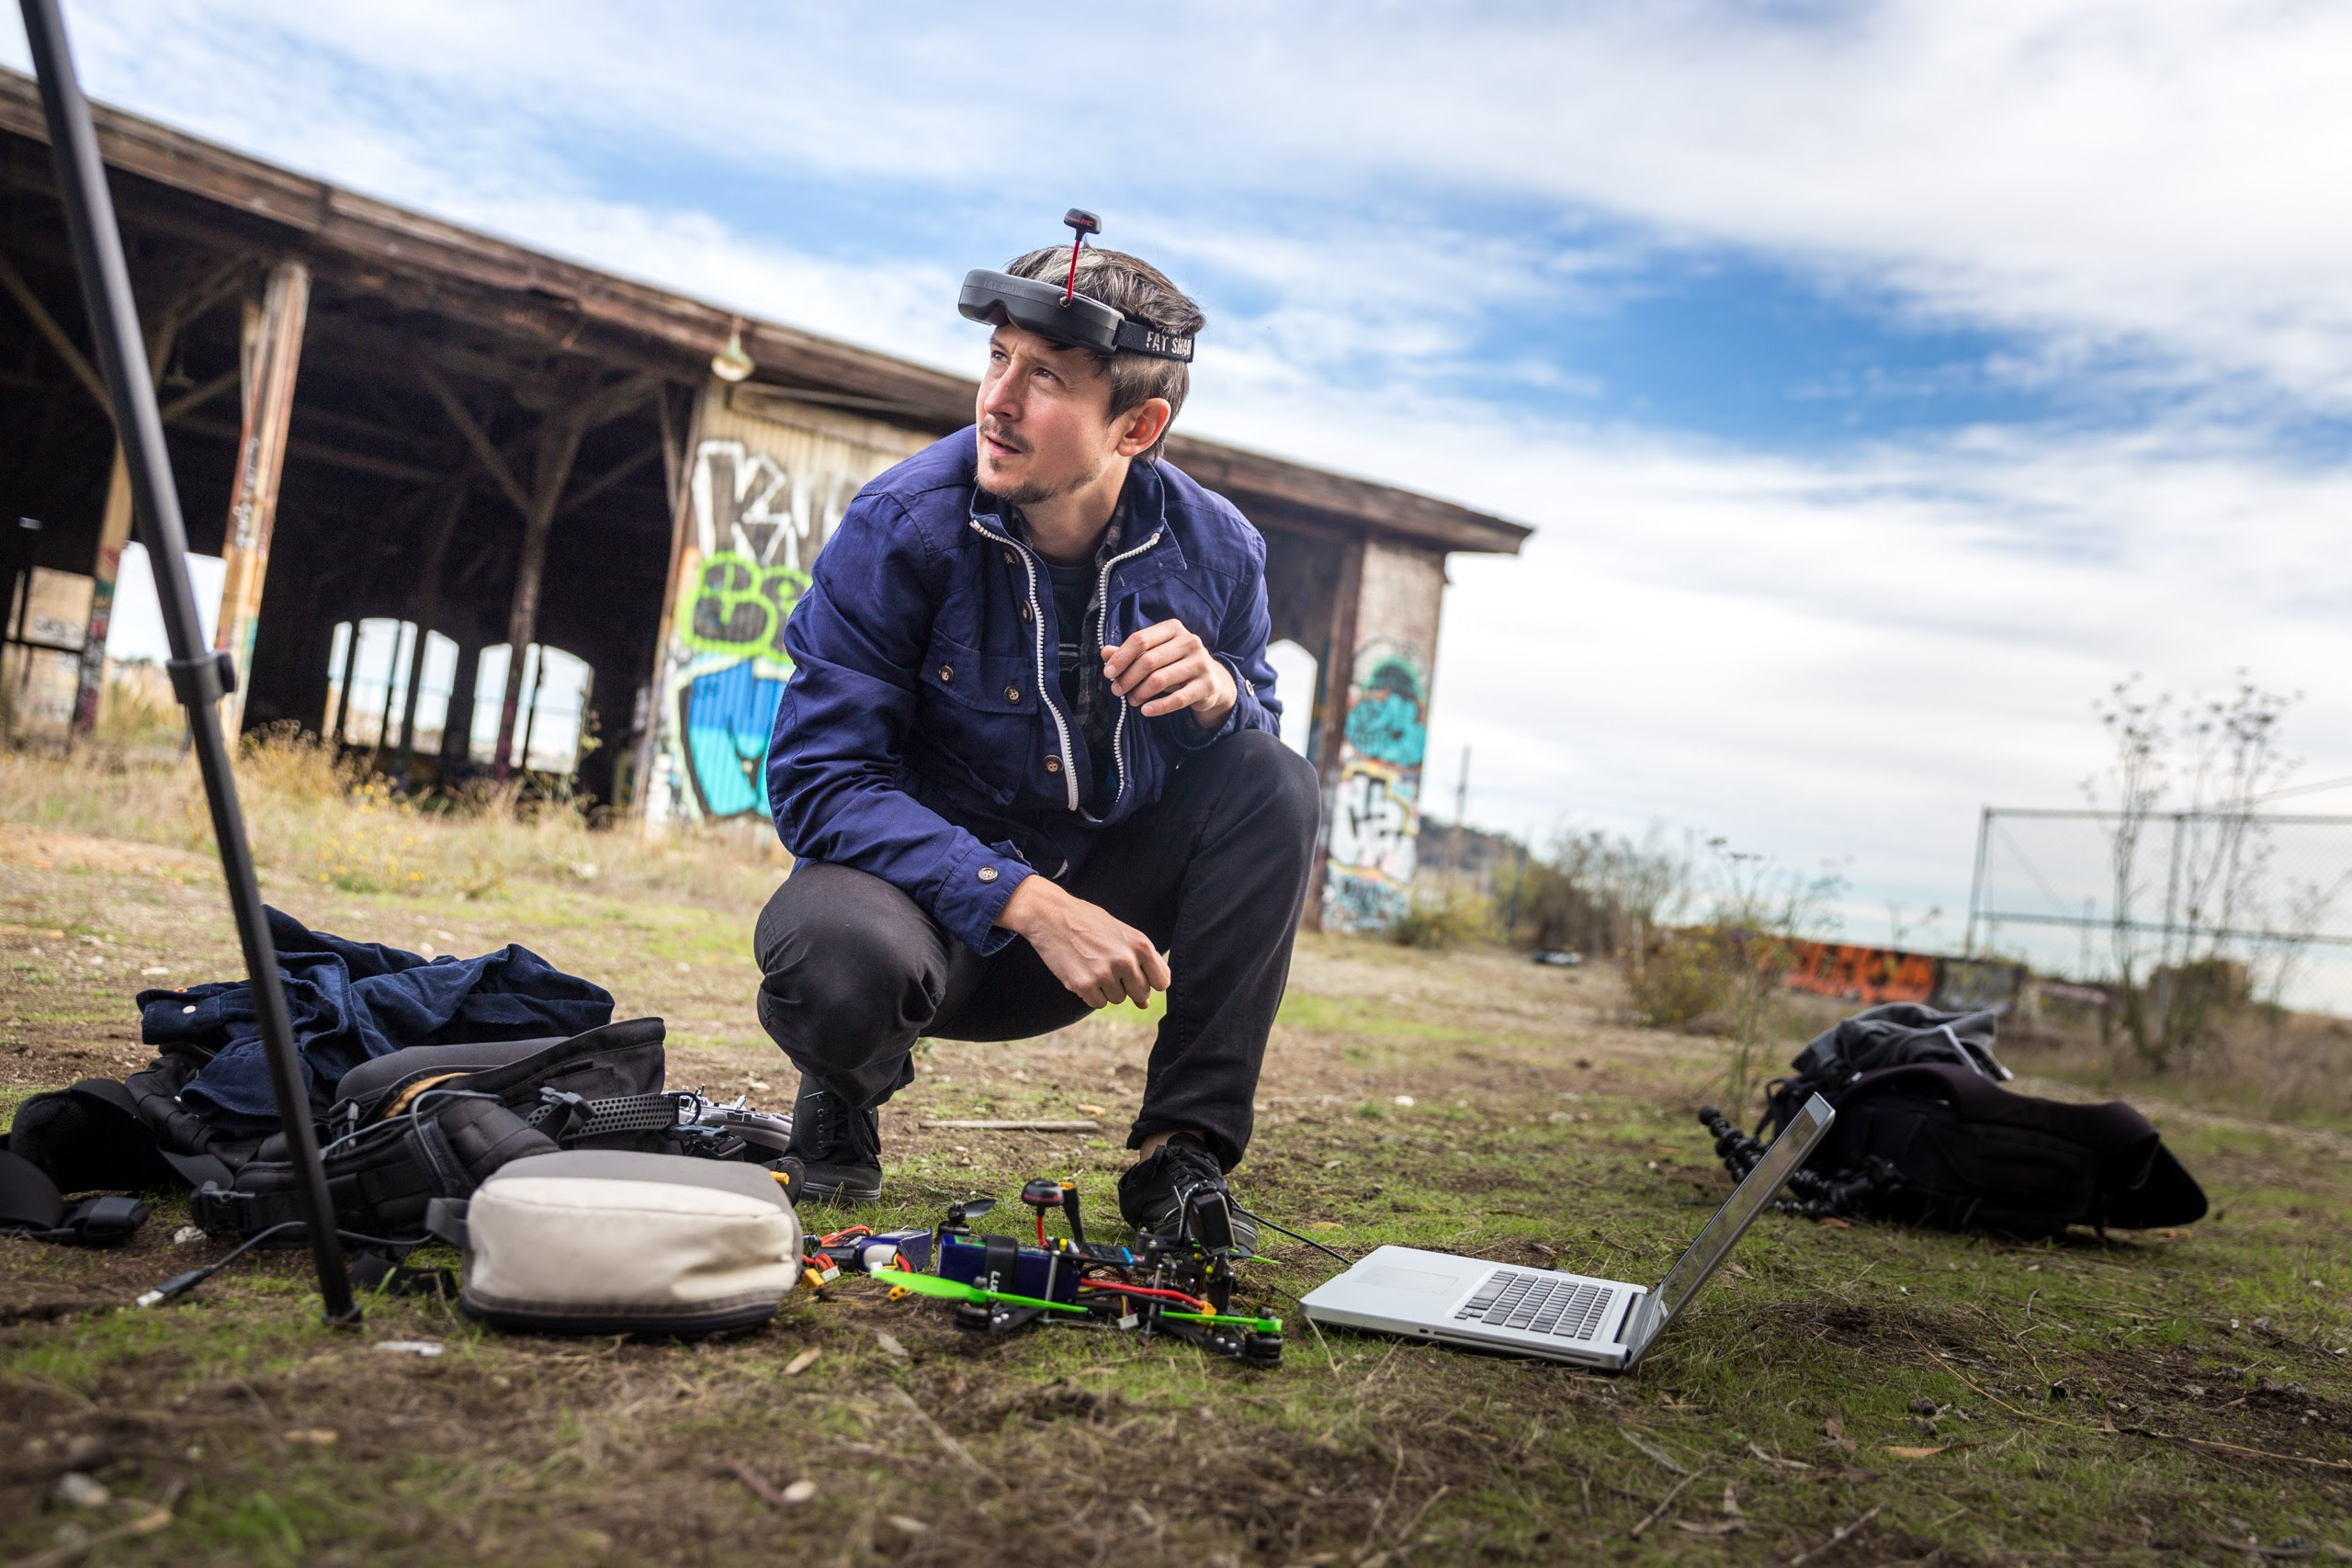 FPV racing pilot with his equipment